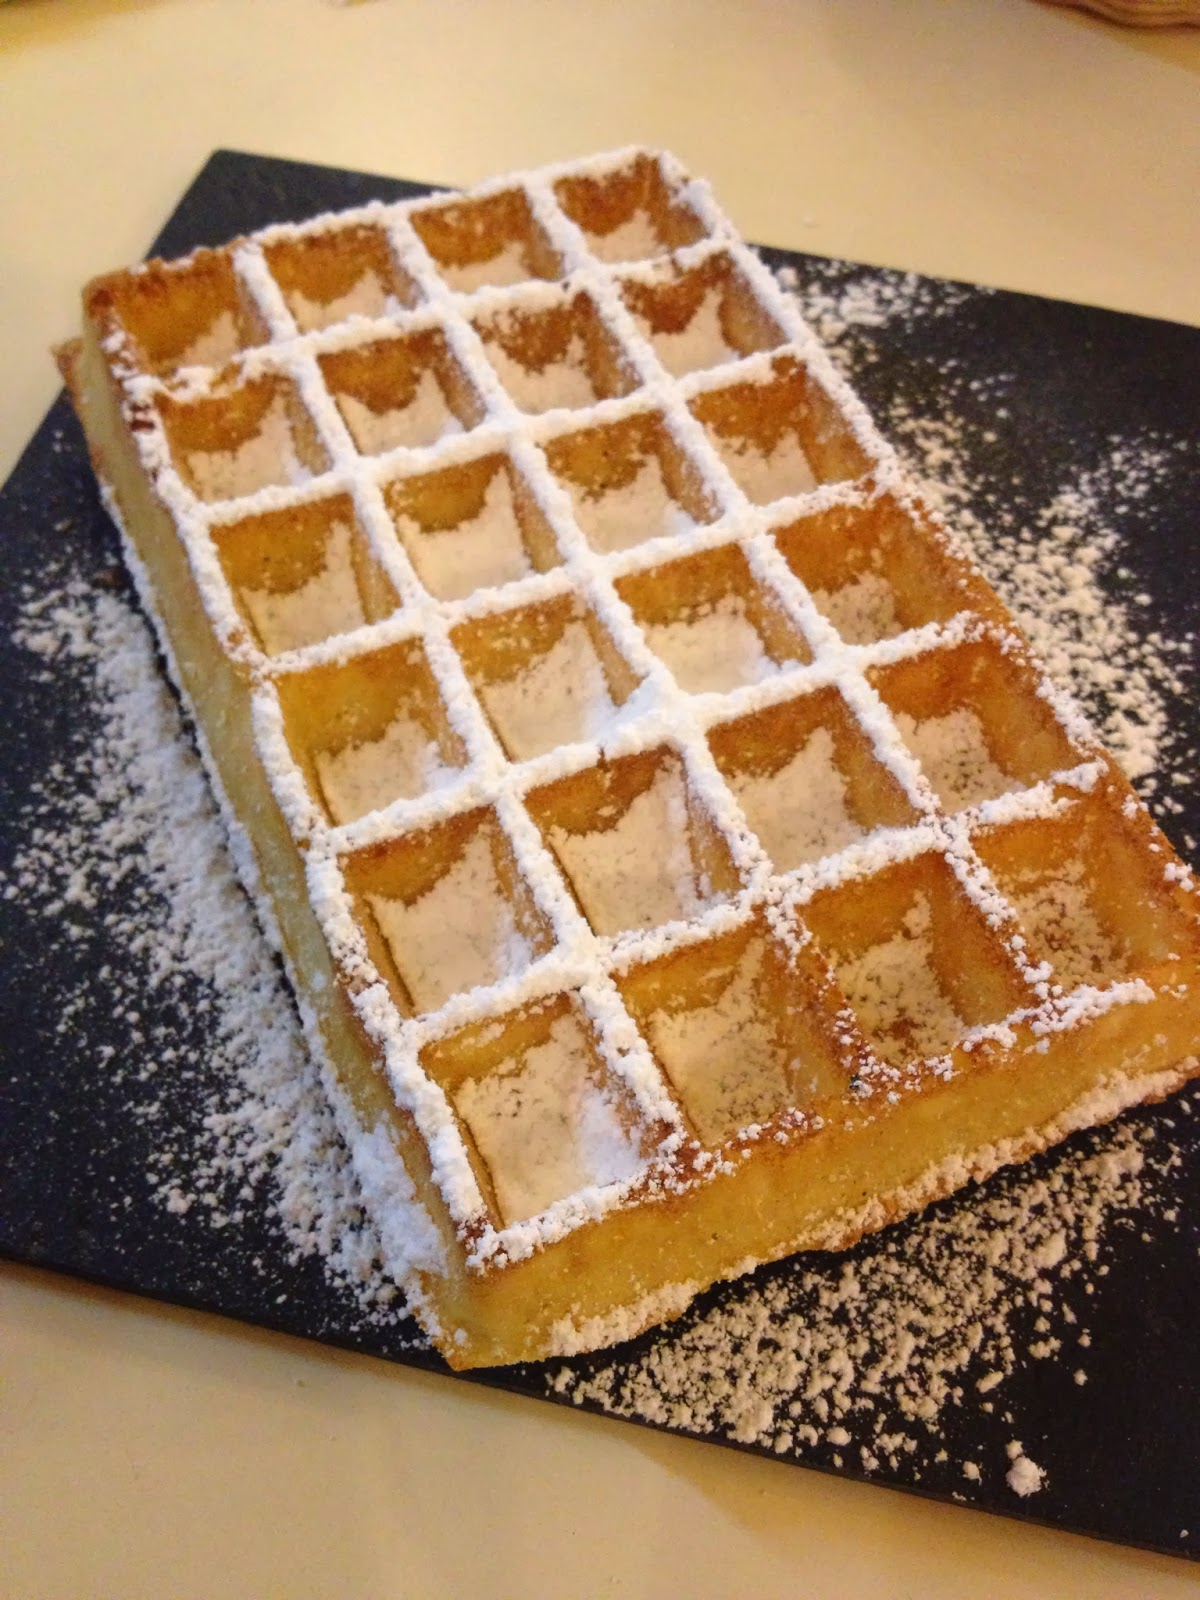 Brussels - Traditional Belgian waffle with powdered sugar